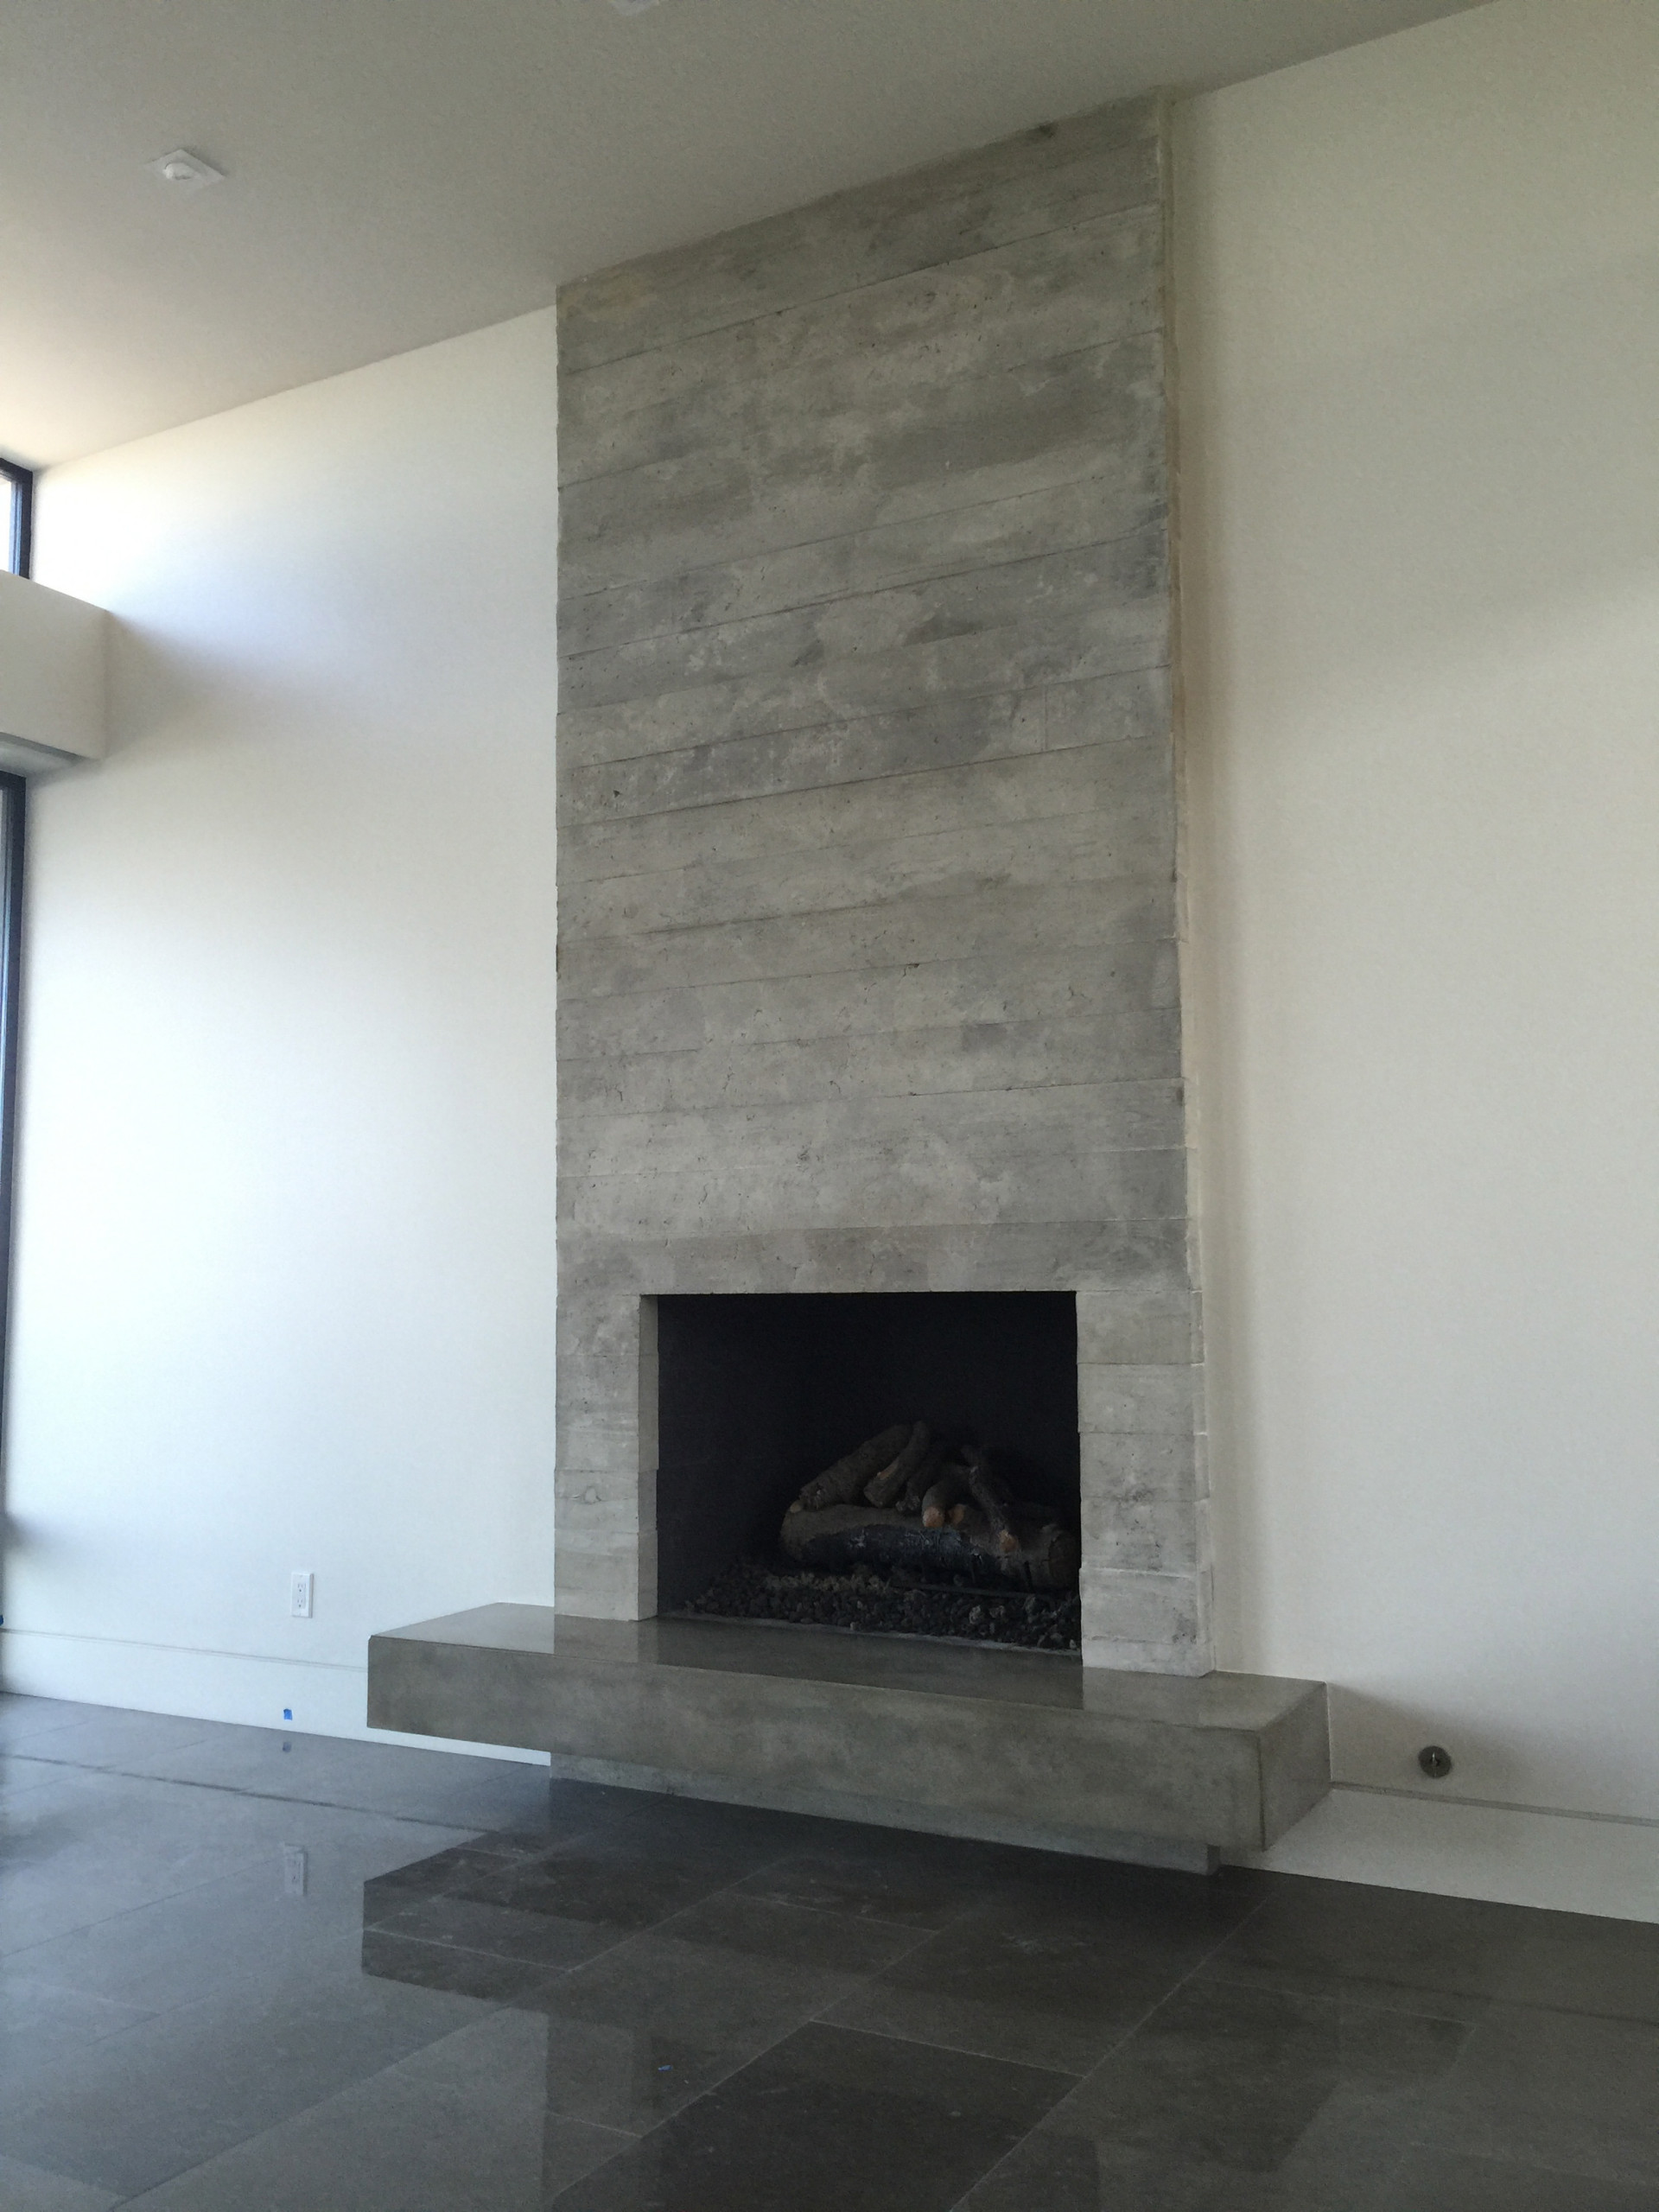 Board Formed Concrete veneer tile fireplace surround and floating ...